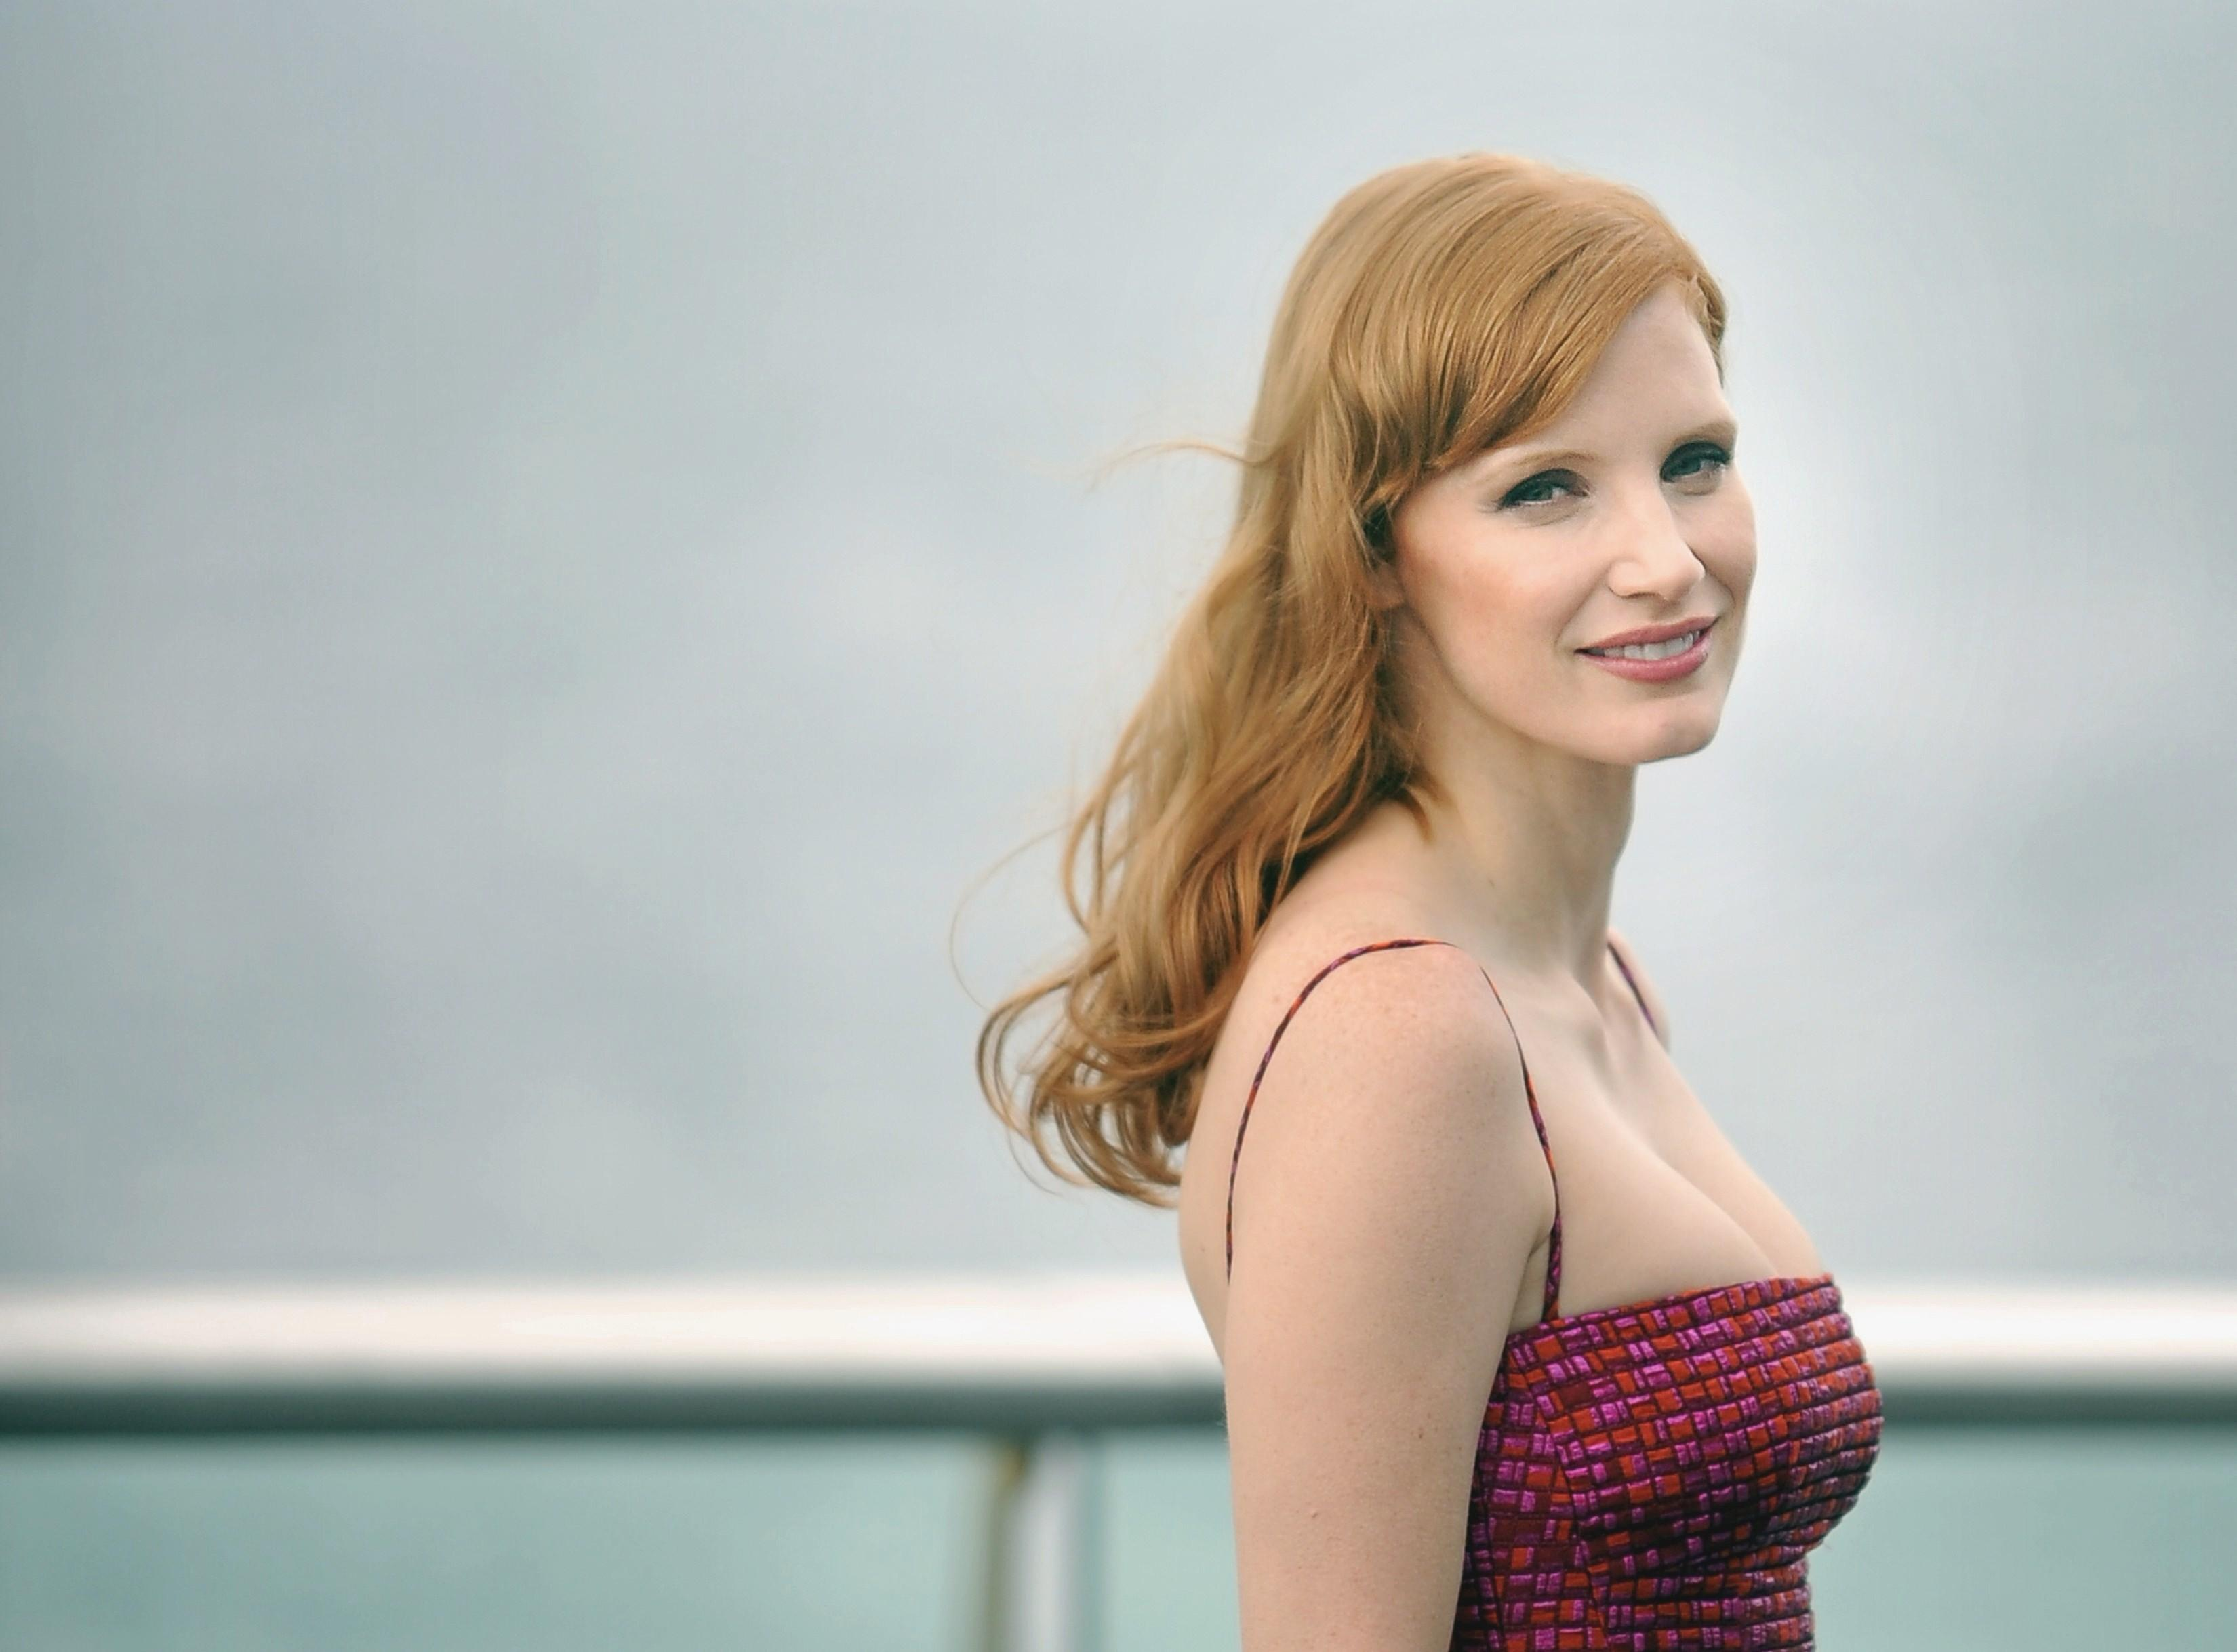 3300x2437 - Jessica Chastain Wallpapers 11